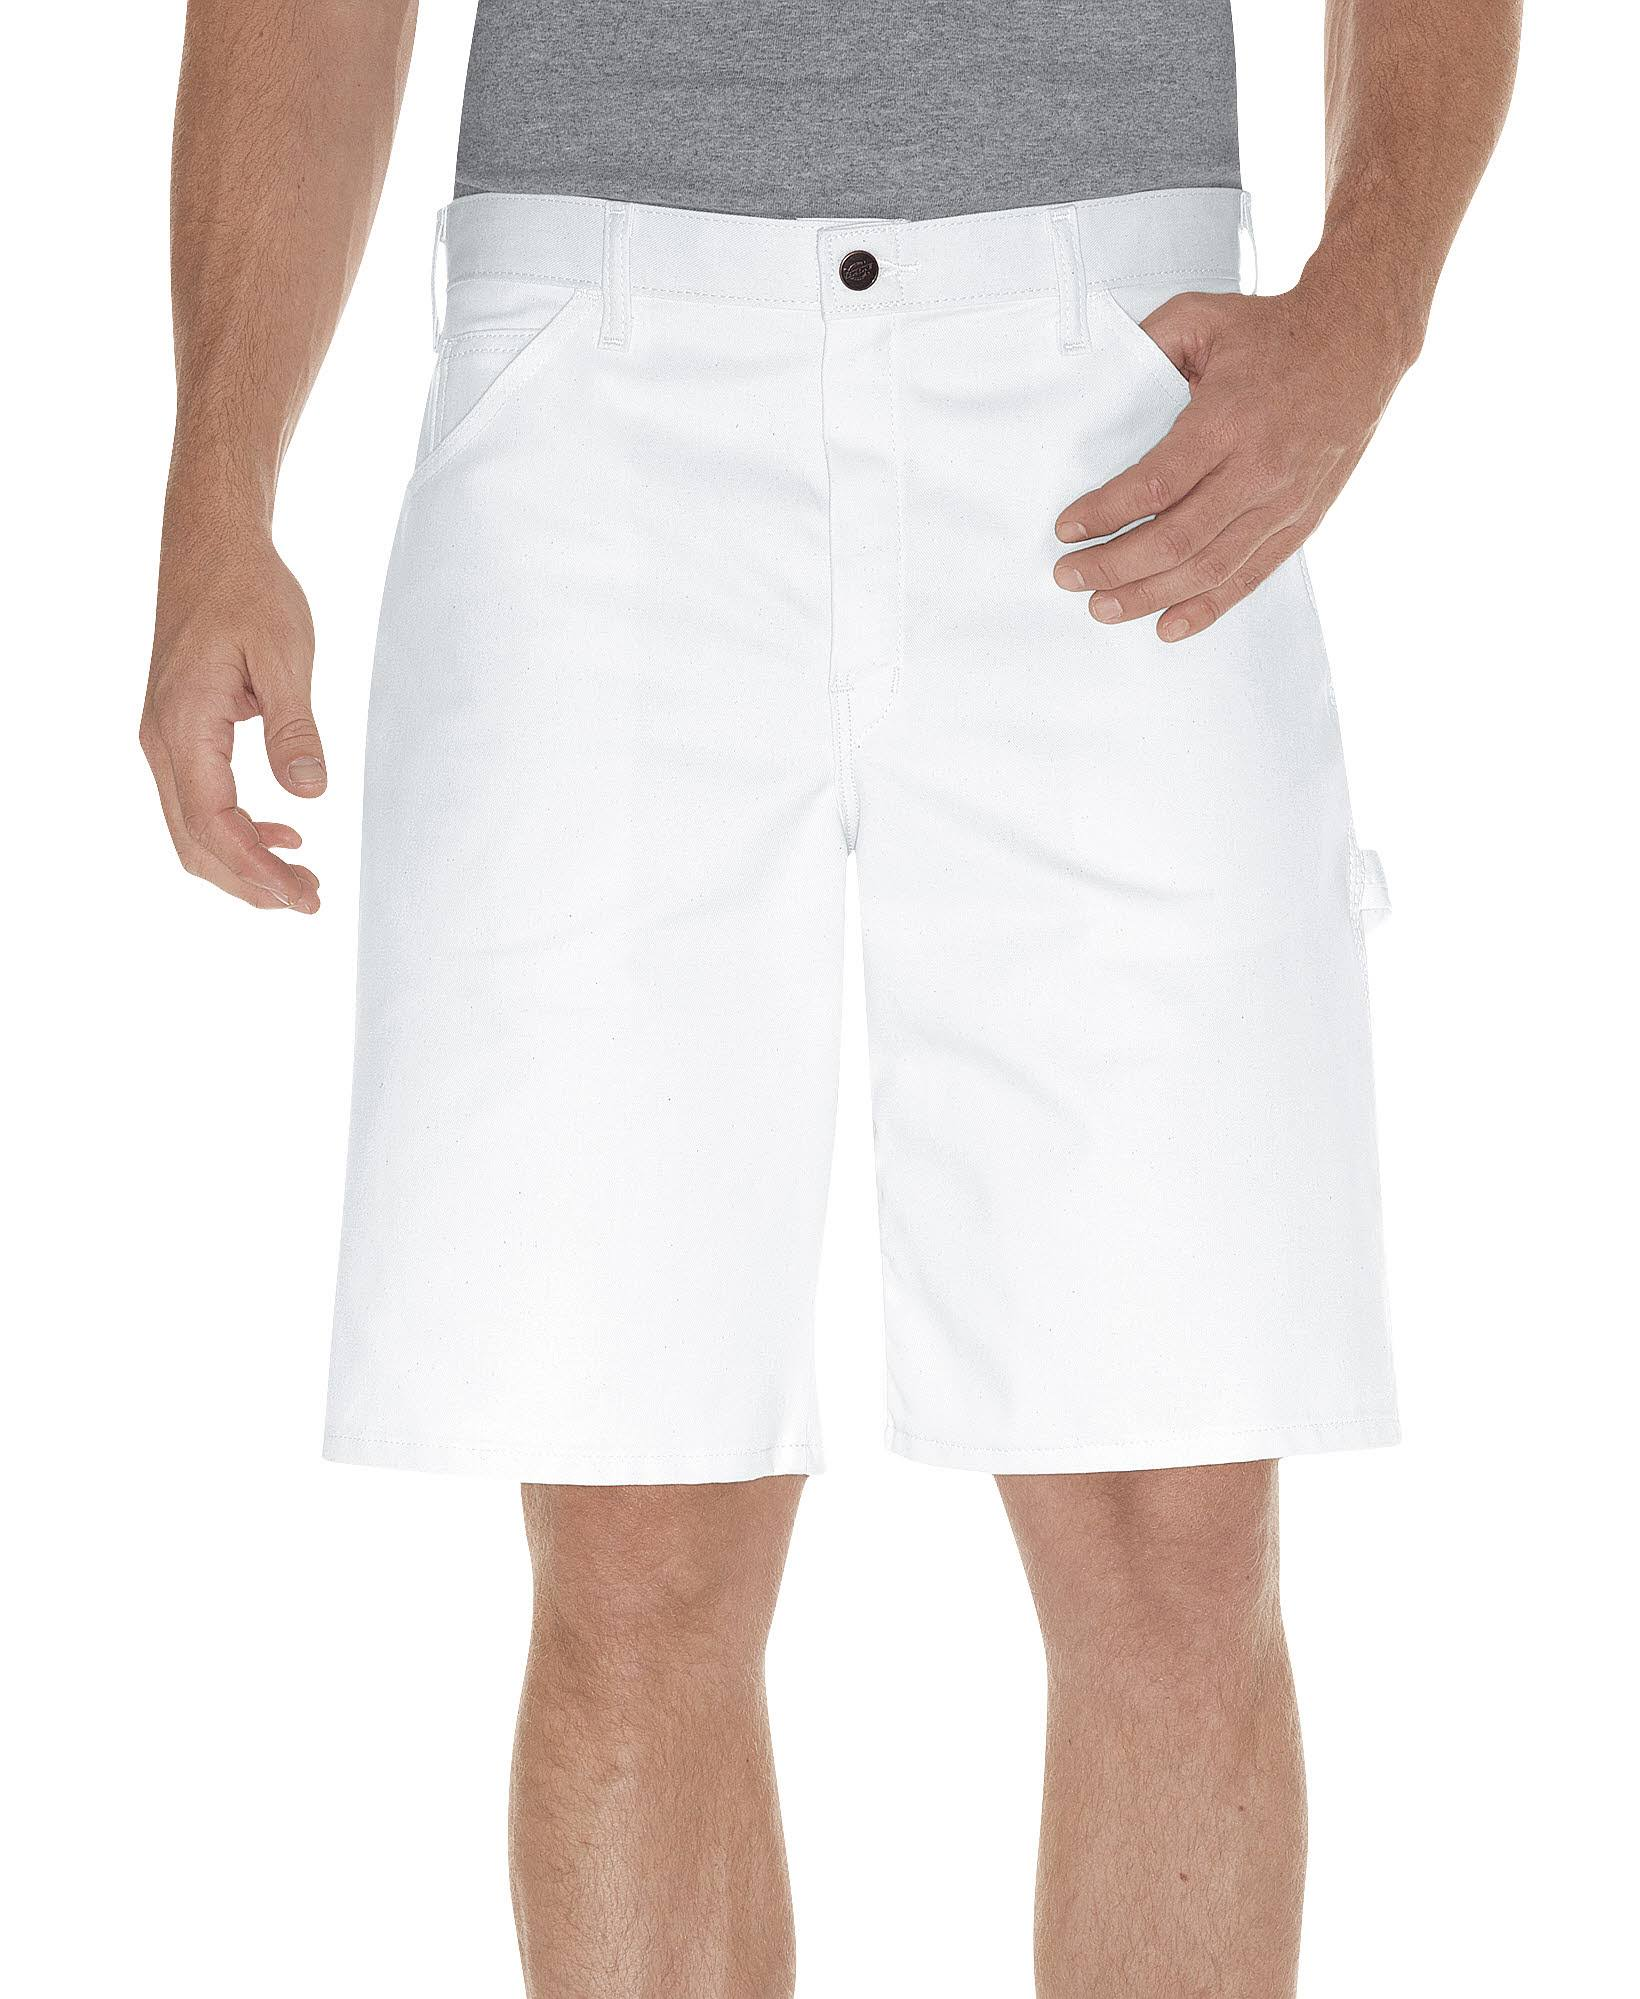 "Dickies DX400WH Relaxed Fit Painters Short - 36"" x 10"", White"